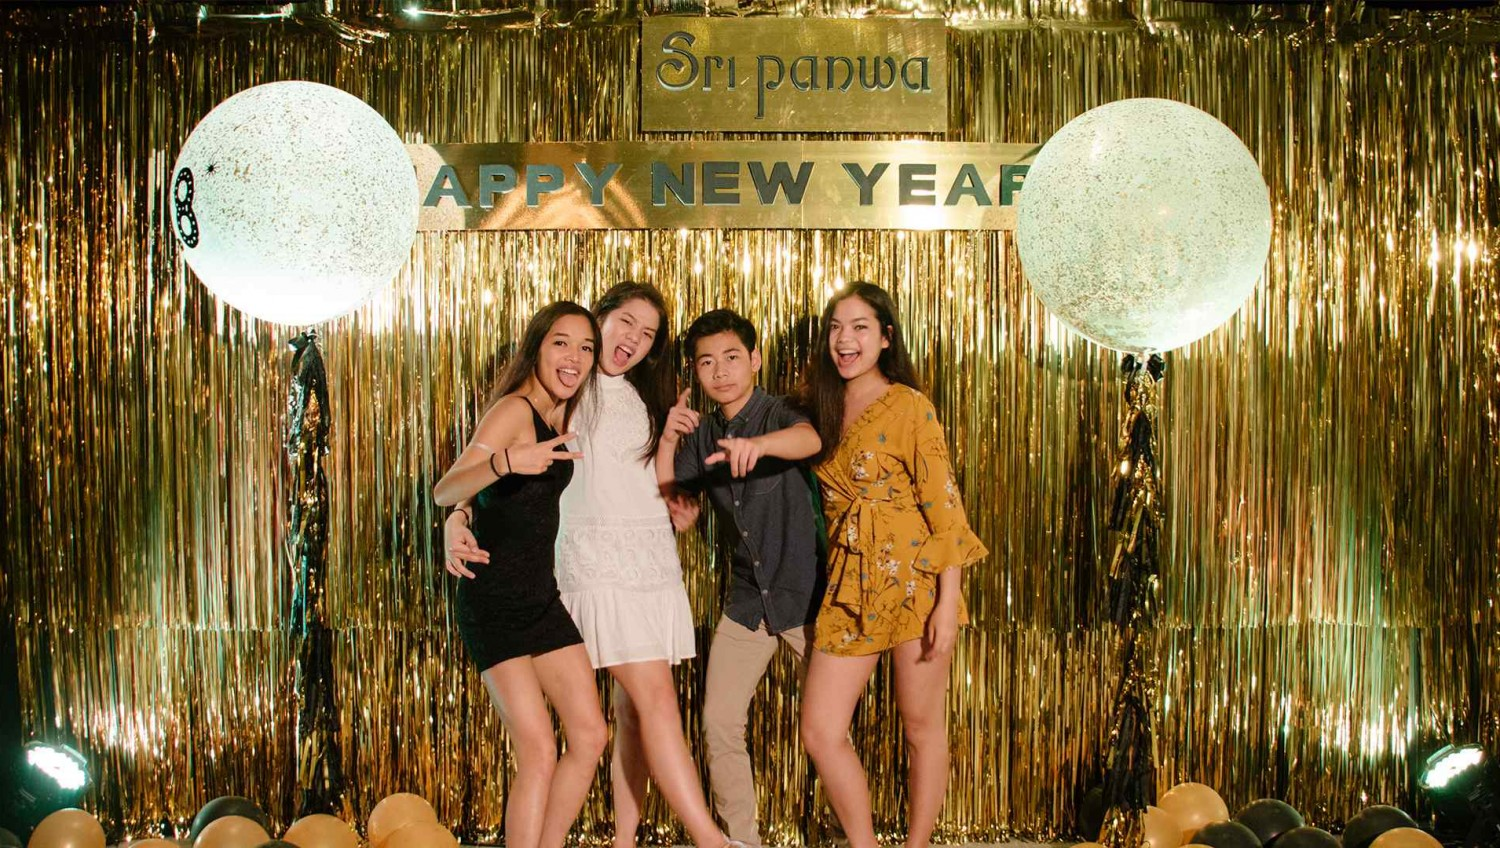 384b8d32b SSS New Year 2018 – Sri Panwa Luxury Hotel Phuket Resort Spa Thailand